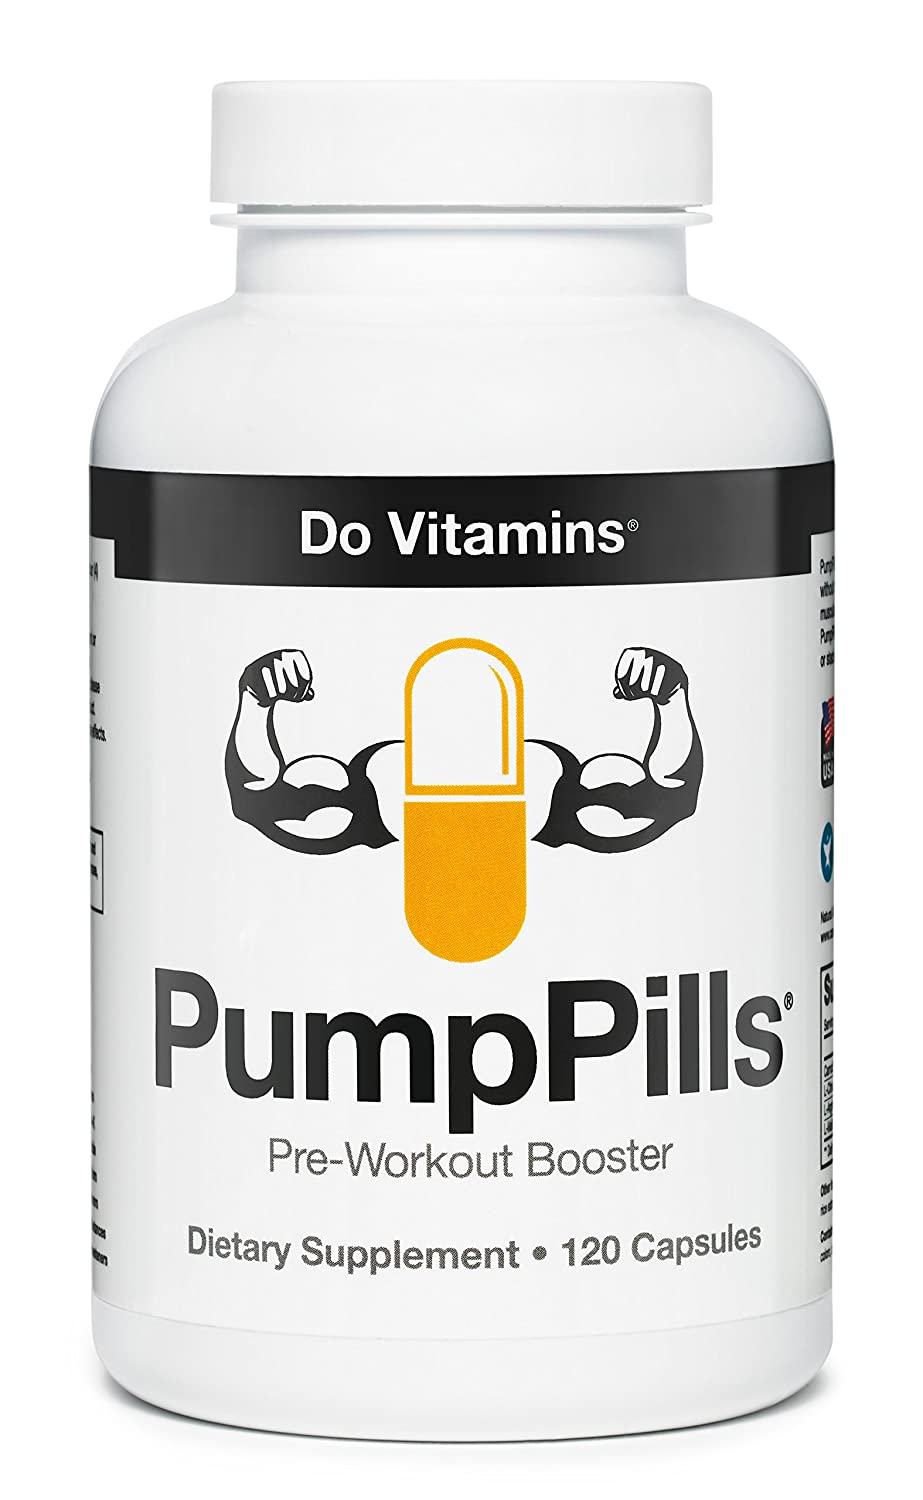 7. DOVitamins PumpPills - Nitric Oxide Booster